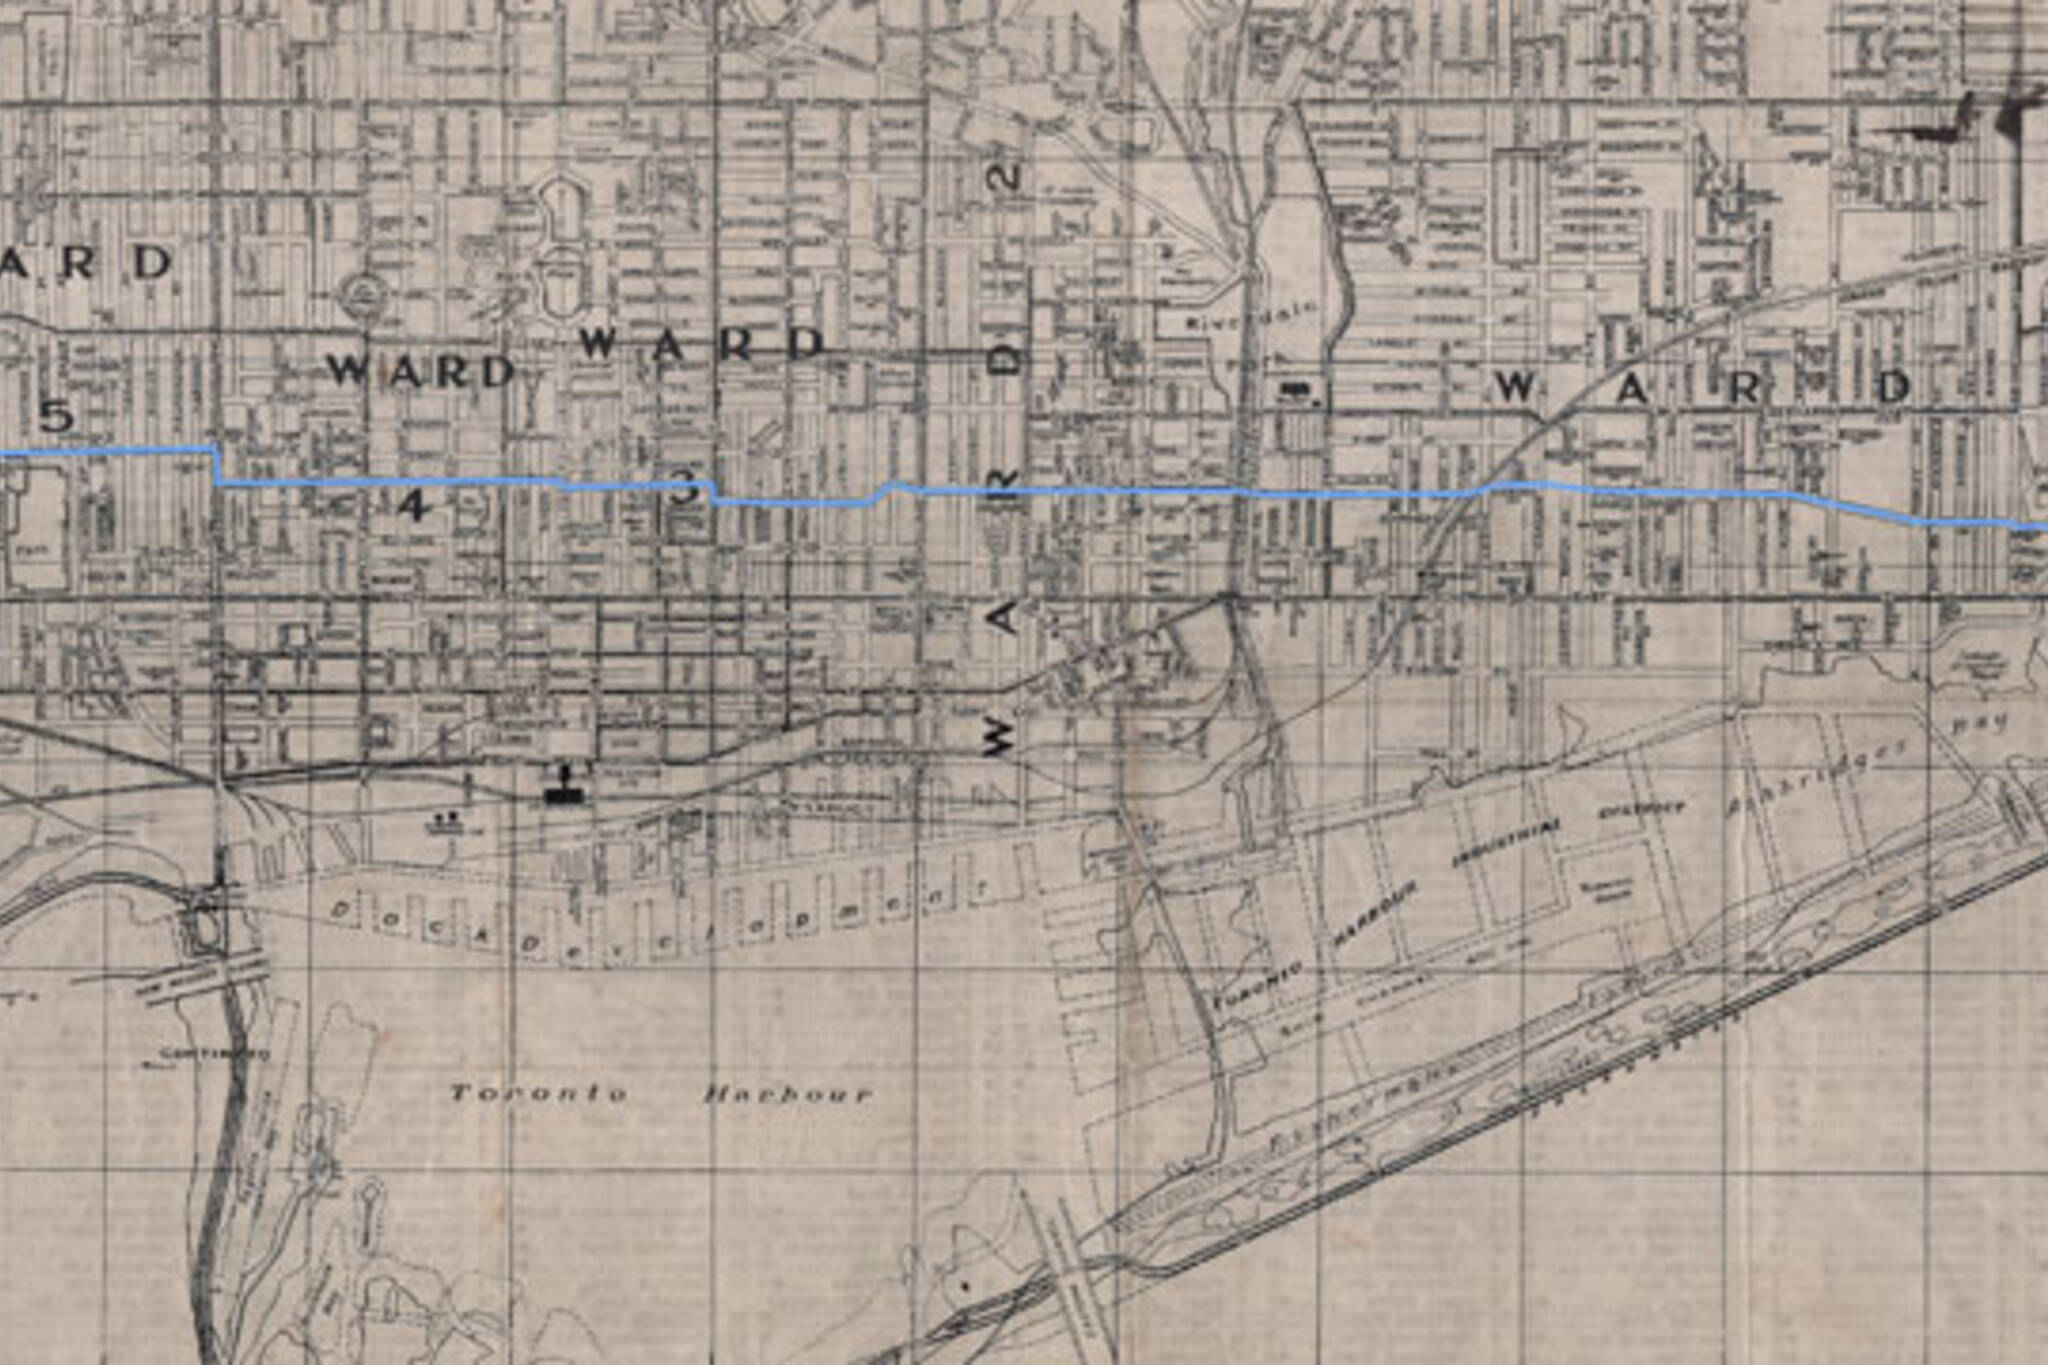 A brief history of what is now known as Dundas Street on main street map, st. lawrence market, downsview park map, interstate 15 map, ontario map, bay street, toronto islands, bloor street map, dundas square, toronto eaton centre, casa loma, chinatown, toronto, queen street west, cn tower map, lake simcoe, i-35 map, bank street, hwy 1 map, brookfield place map, victoria street map, high park map, highway 93 map, yorkville, toronto, gardiner expressway, underground city map, highway 101 map, i-65 map, federal highway map, royal ontario museum, toronto map, richmond hill, don valley parkway map, highway 99 map, kensington market map, hockey hall of fame,